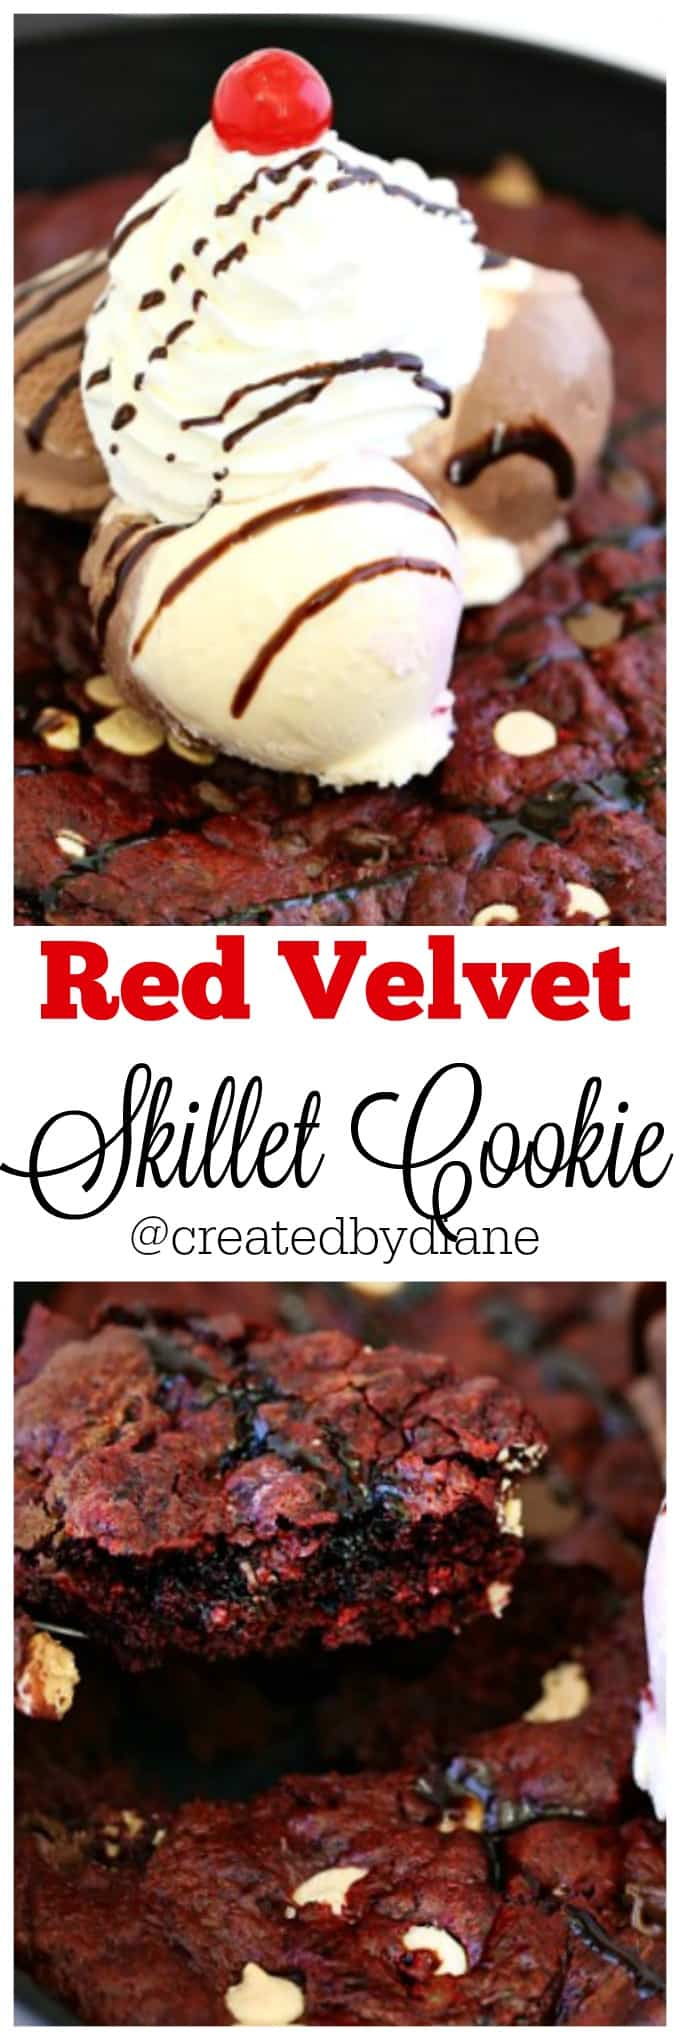 Red Velvet Skillet Cookie @createdbydiane